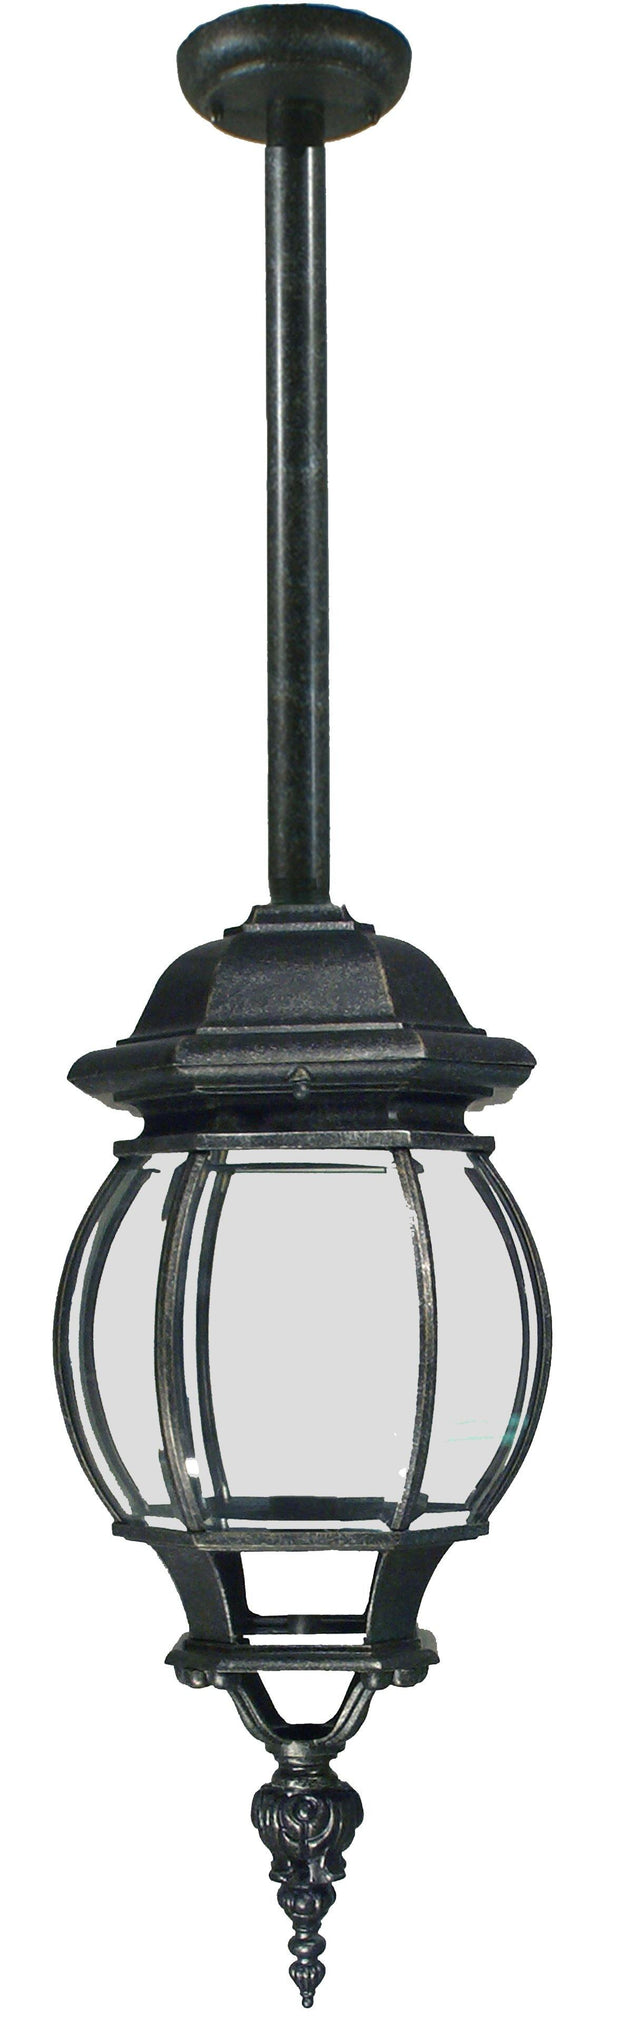 Flinders Exterior Rod Pendant - Antique Black - Lighting Superstore